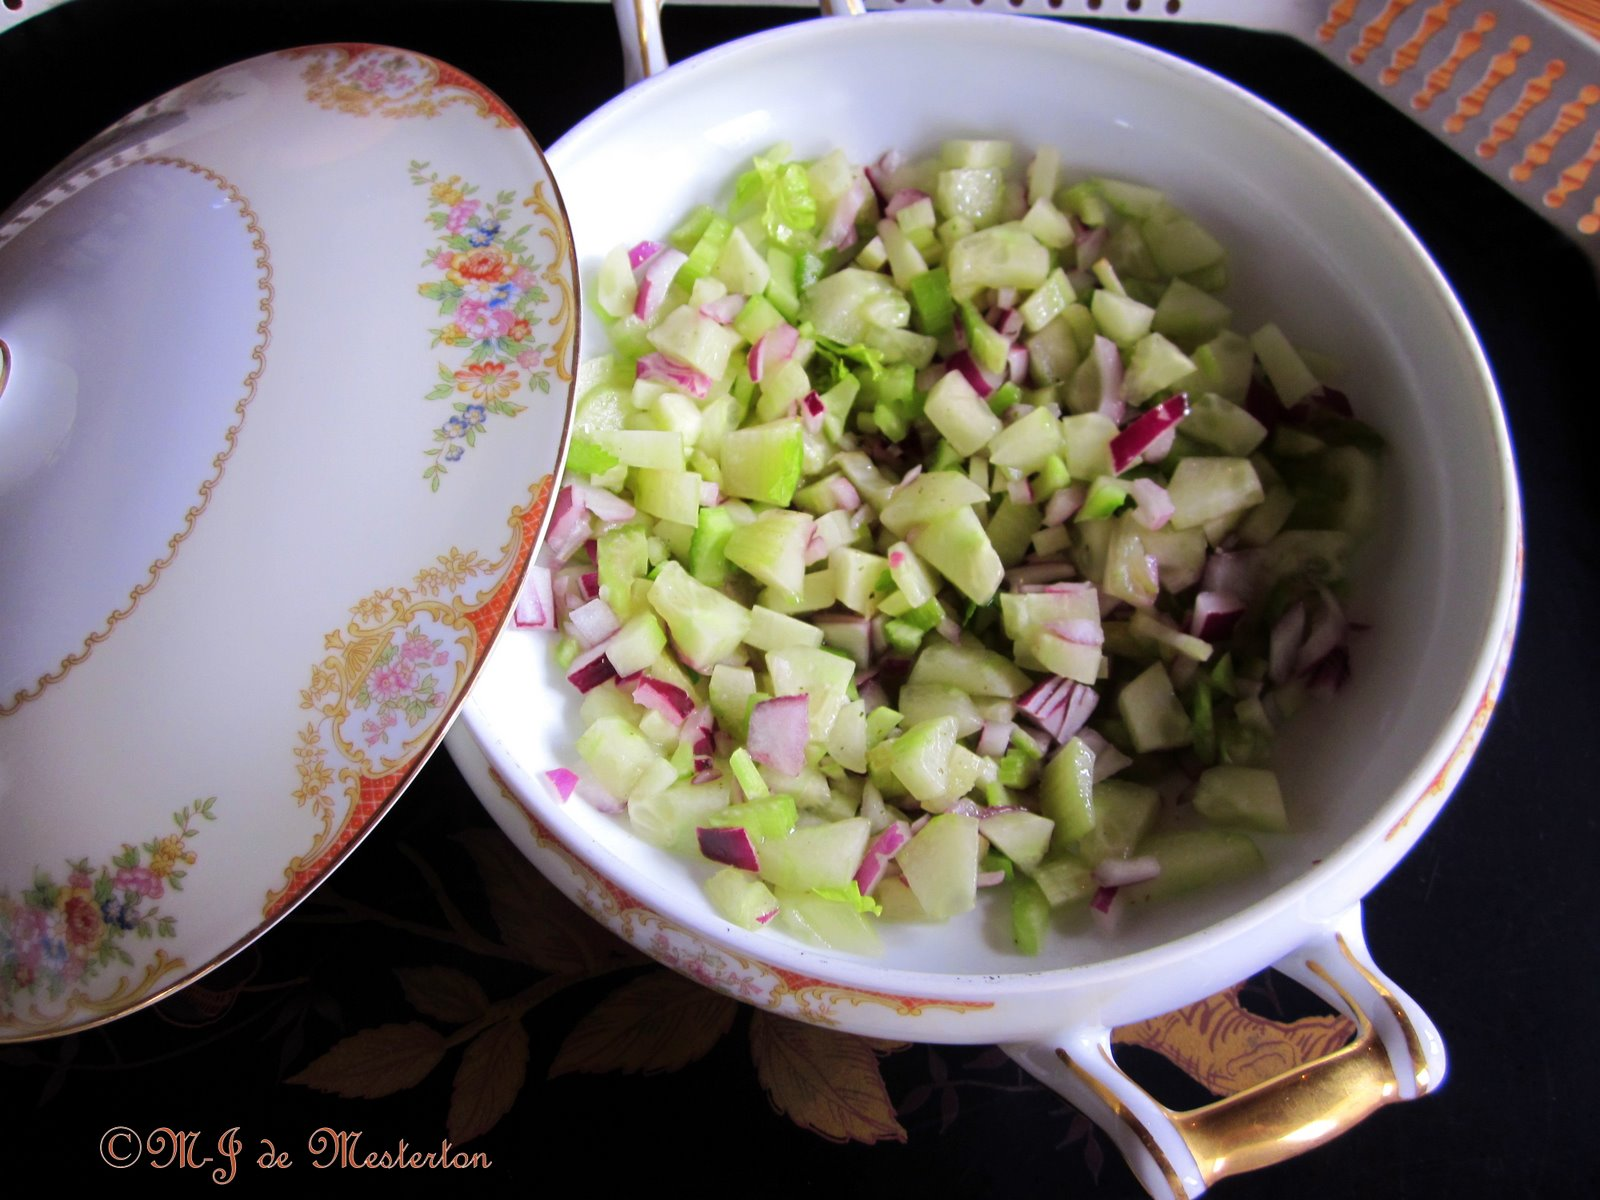 Celery, cucumber, and red onion are chopped into small bits and tossed